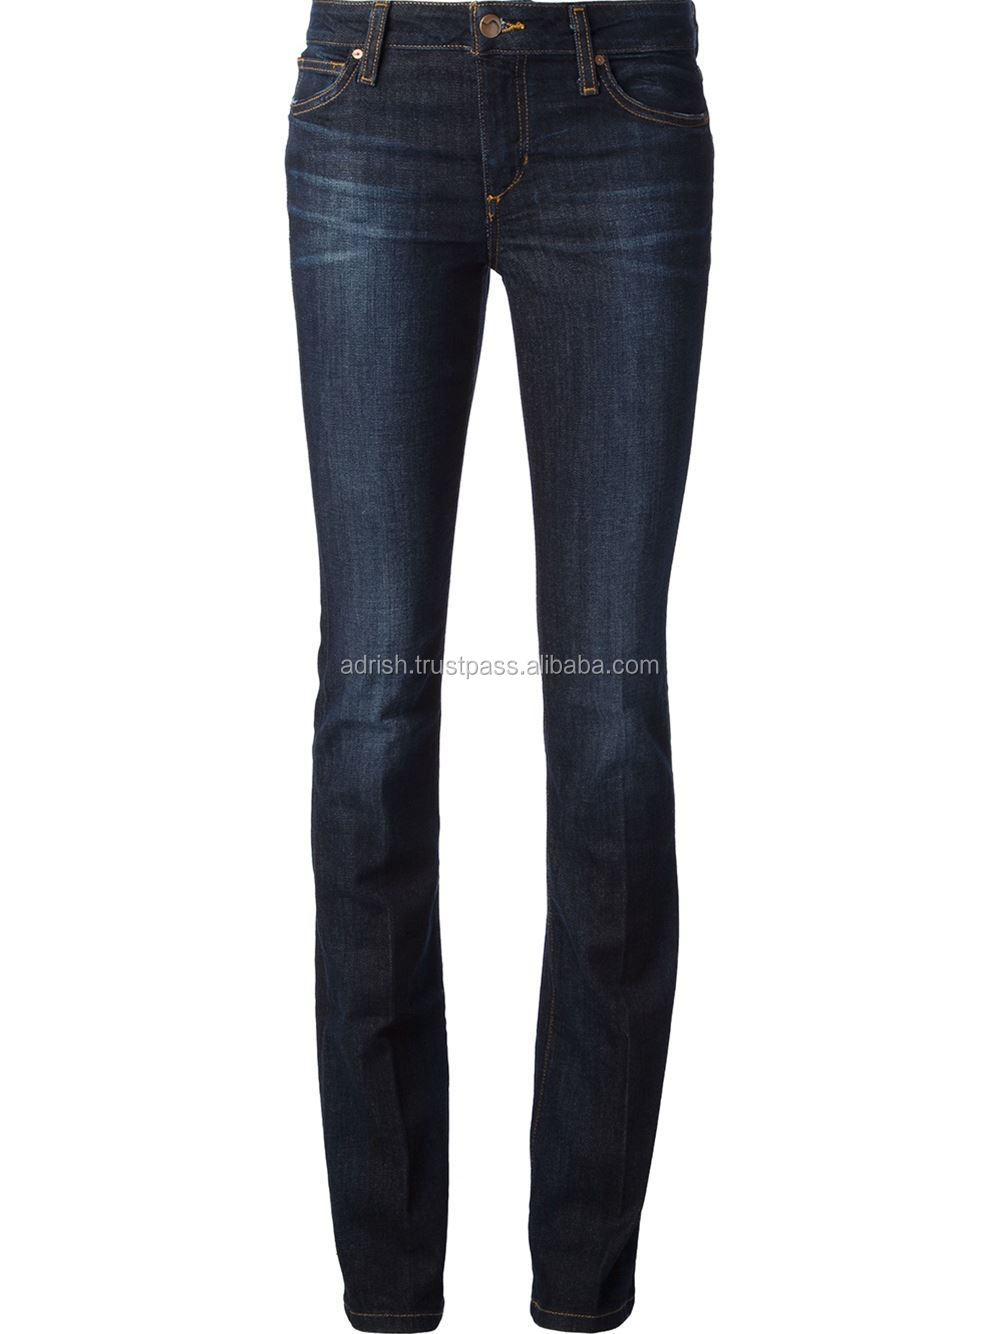 Bootcut Jeans For Men In Style